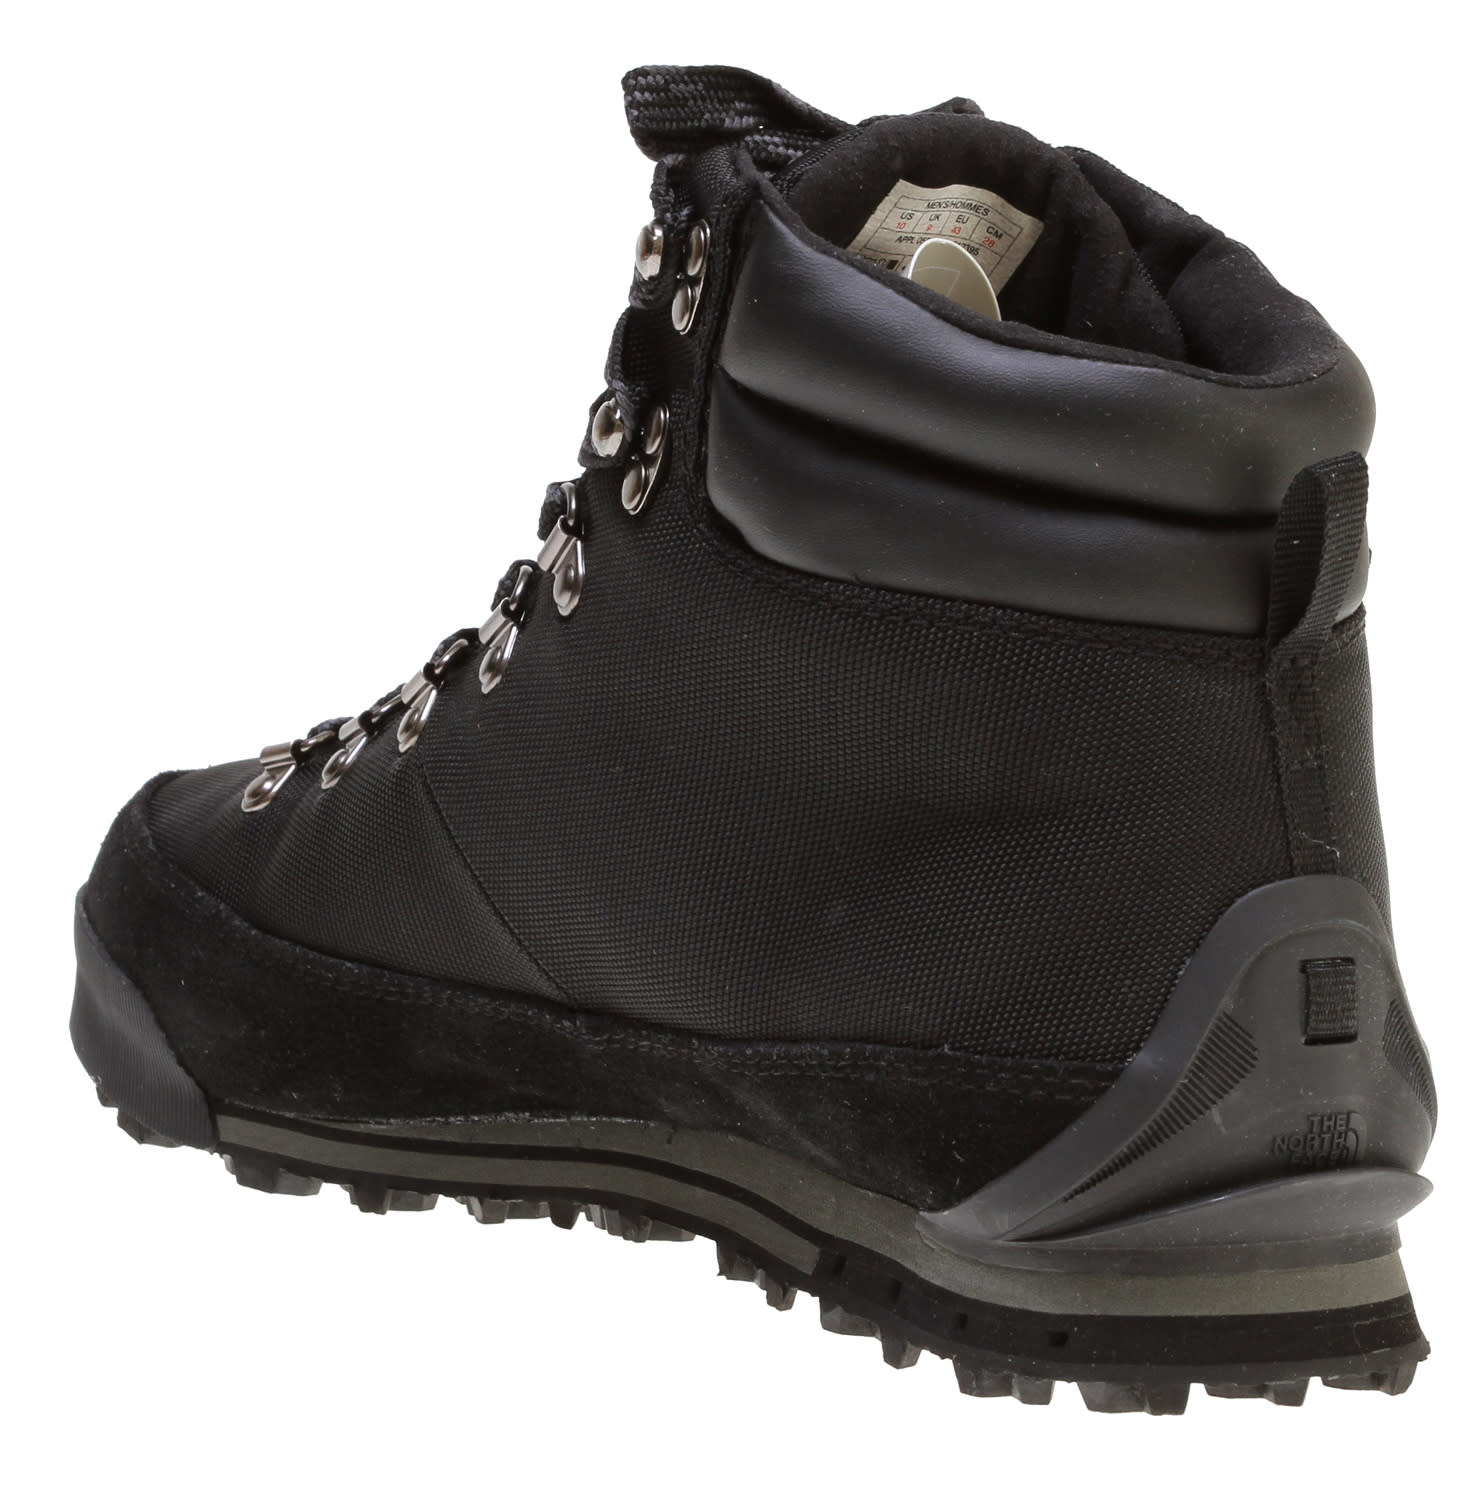 32ba07d1fc The North Face Back To Berkeley Boots